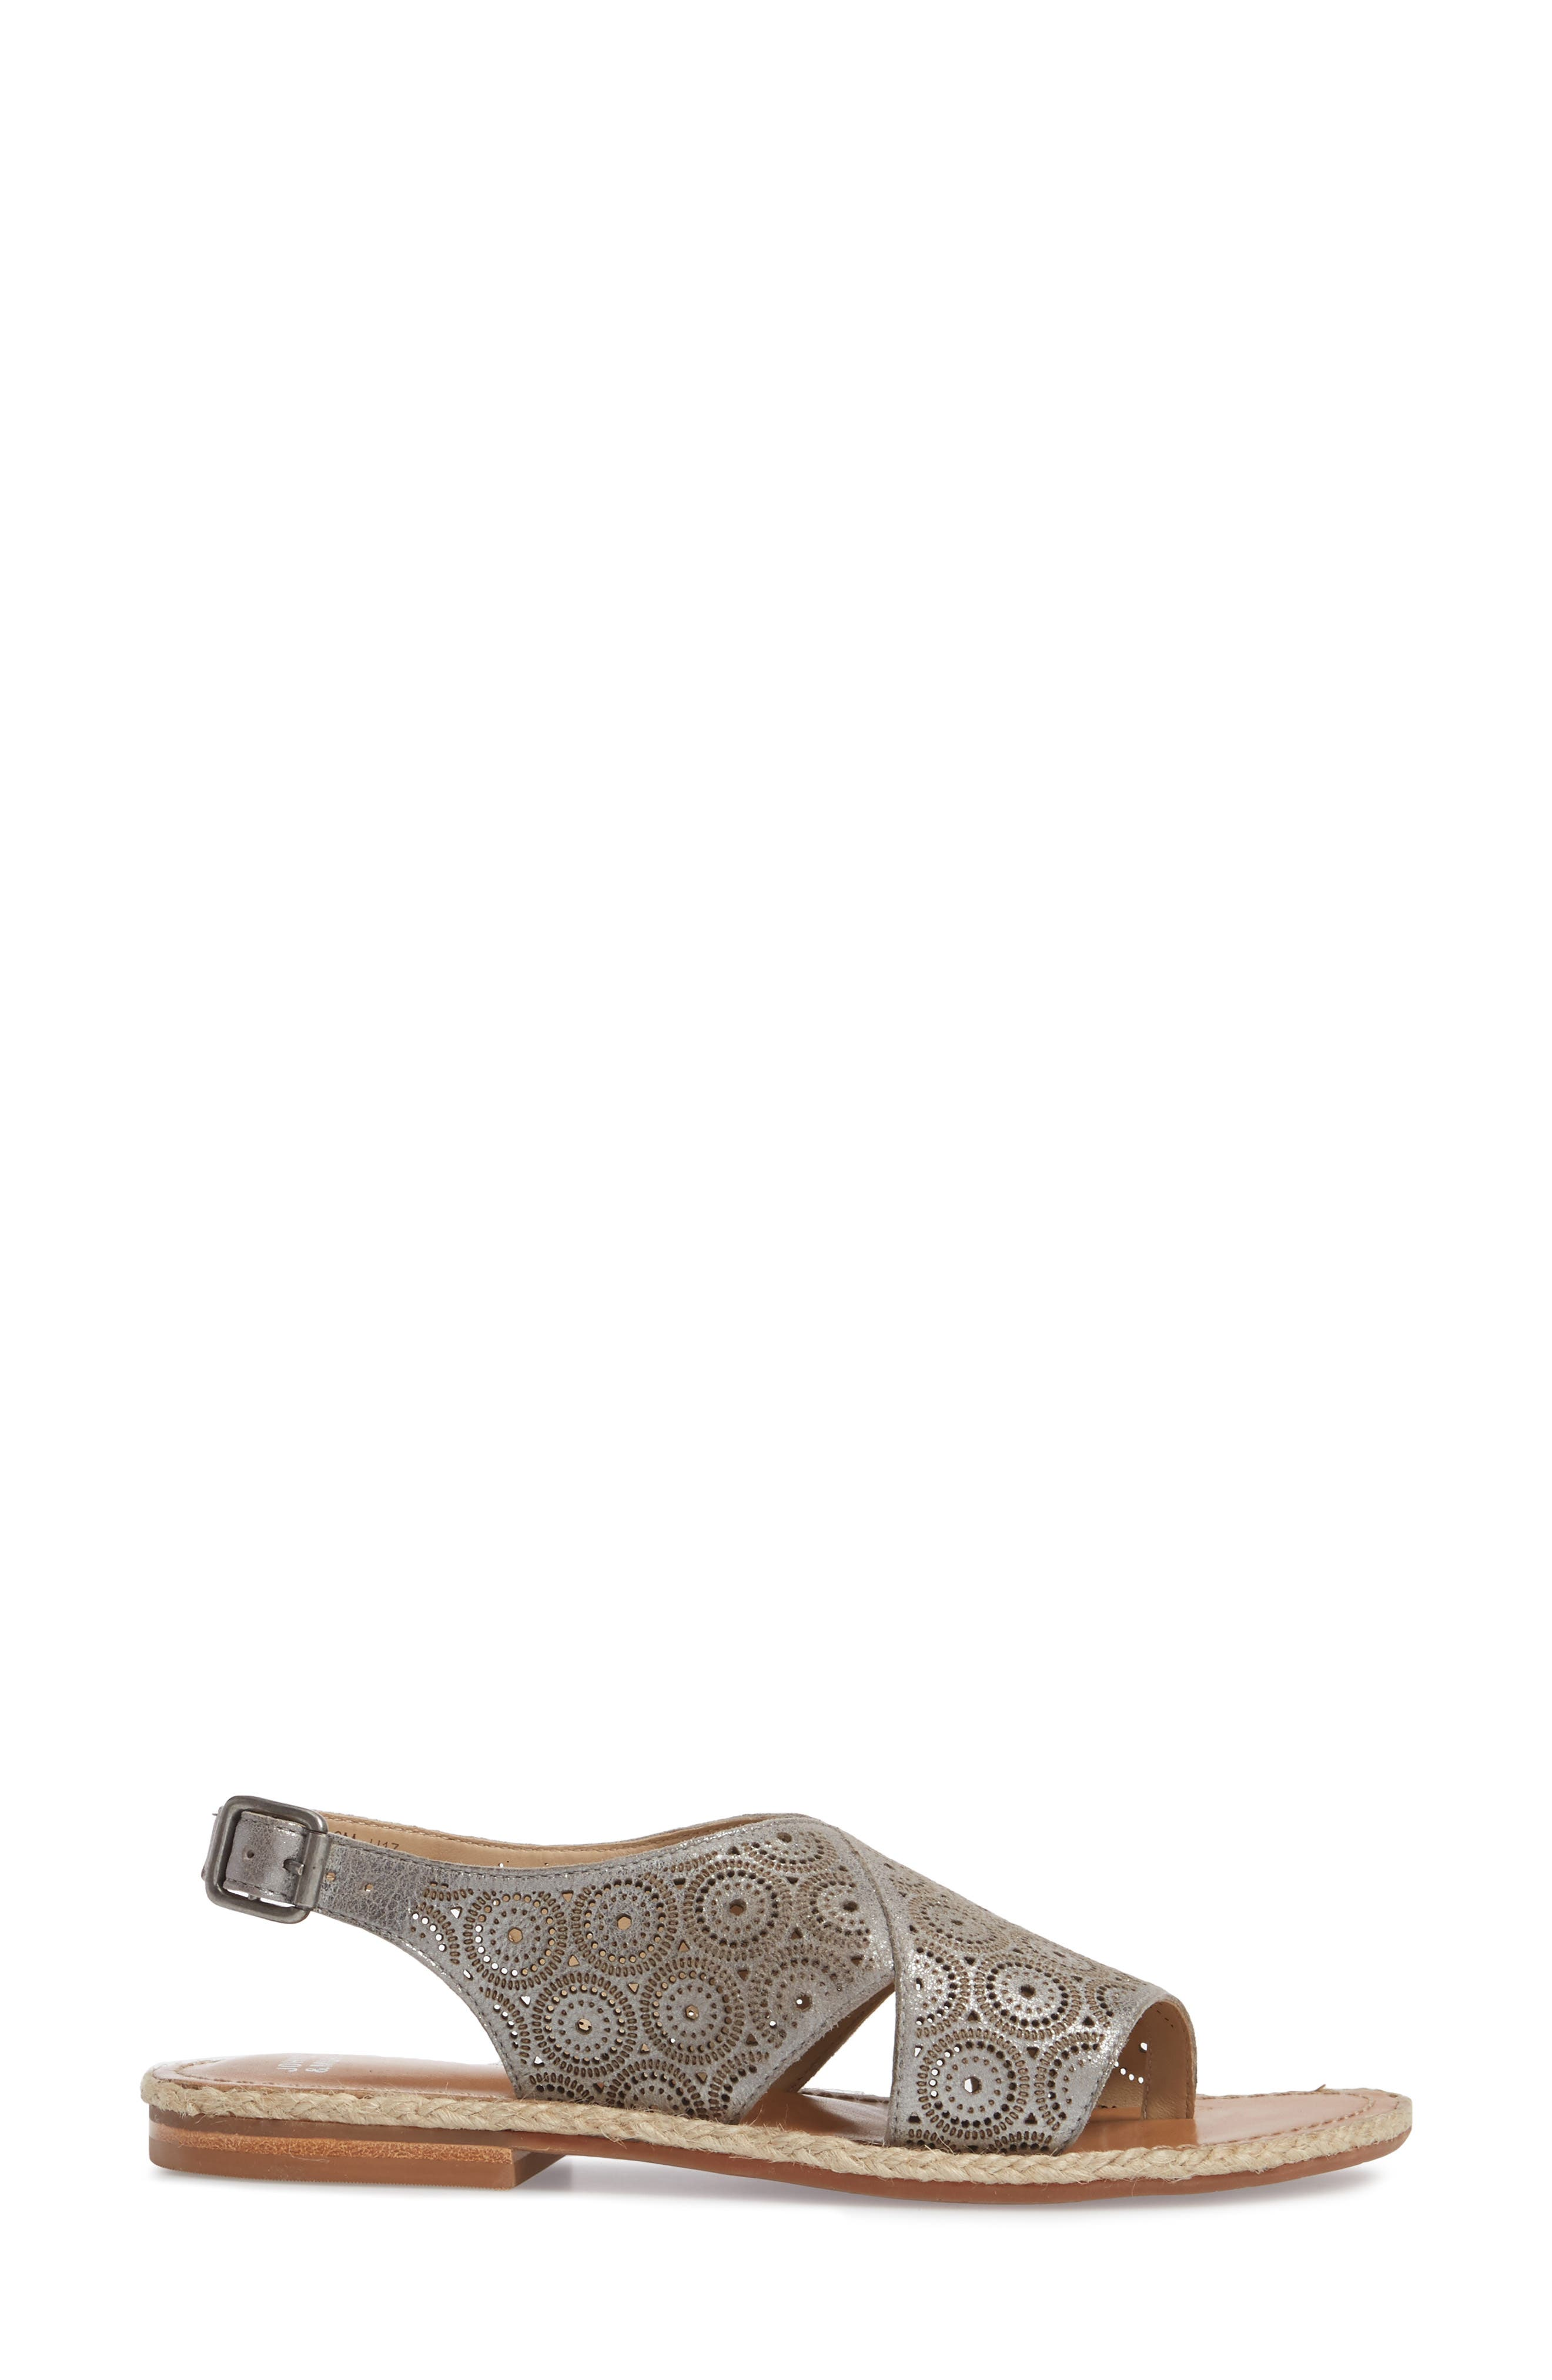 Willow Flat Sandal,                             Alternate thumbnail 3, color,                             Pewter Leather